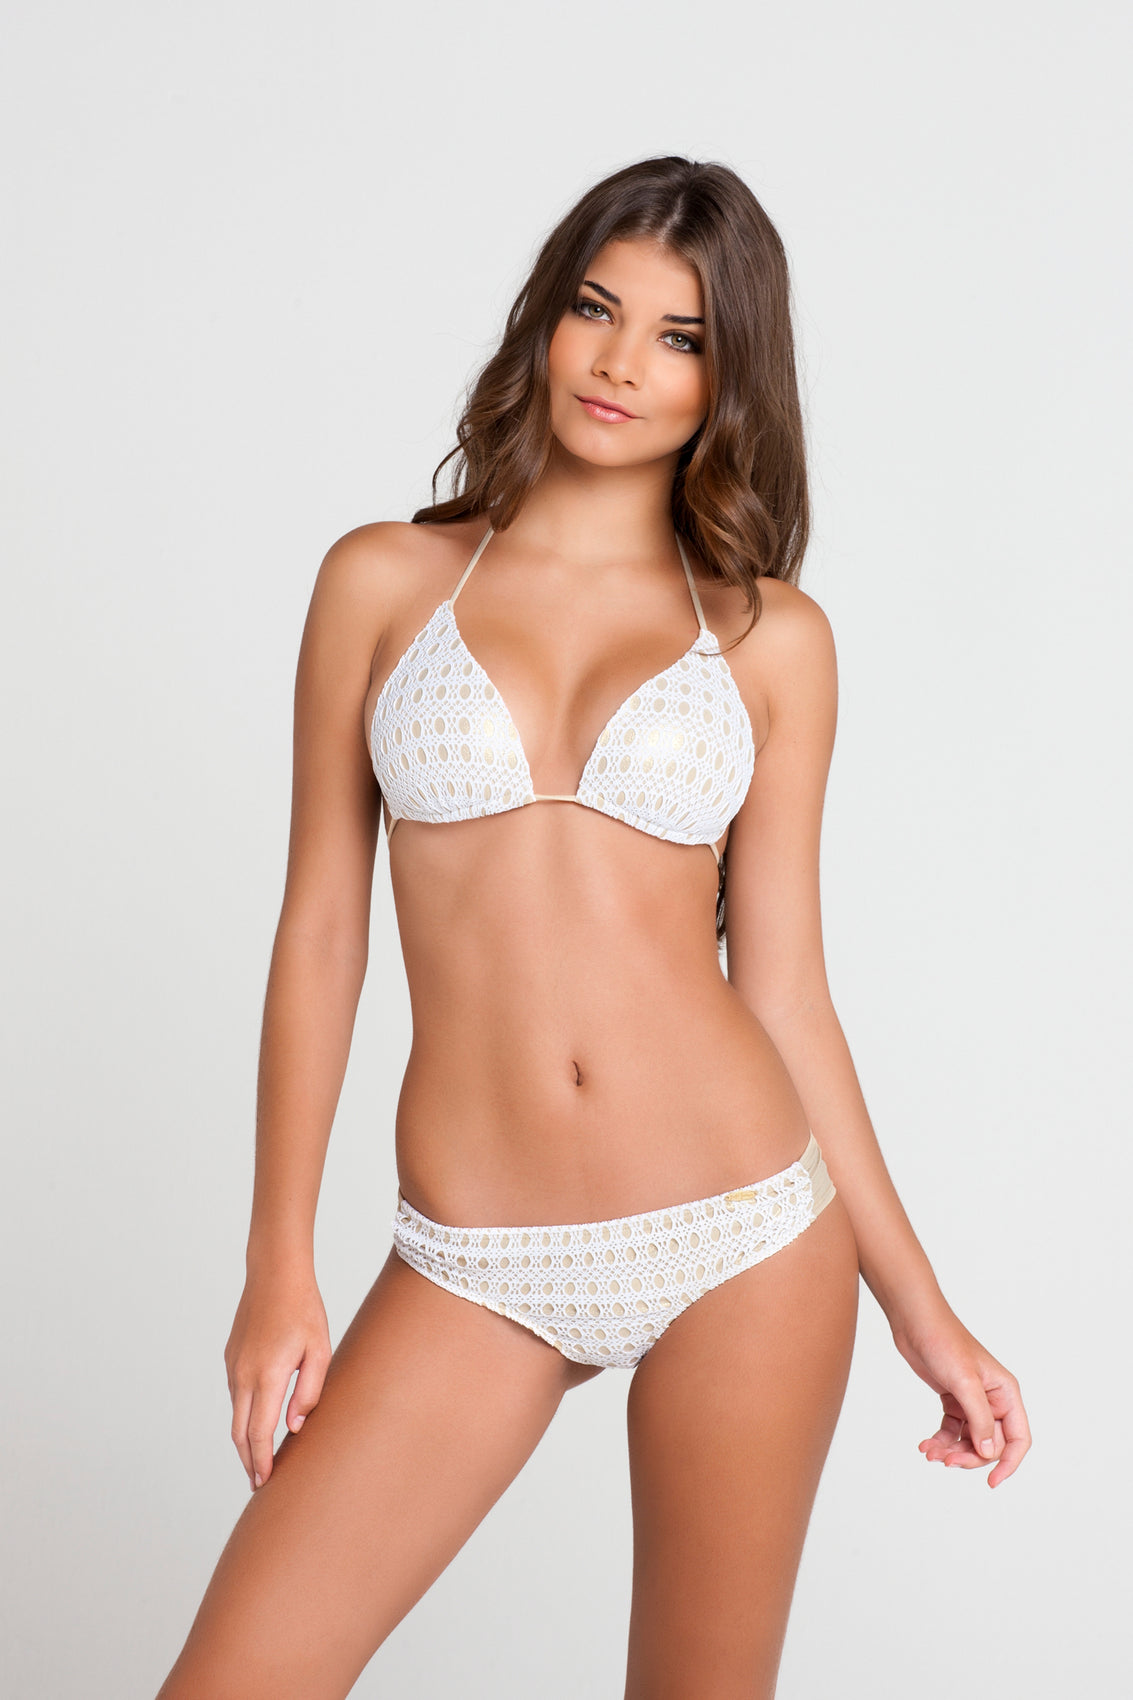 BURBUJAS DE AMOR - Molded Cup Push Up Tri Halter Top & Sassy Cheeks Bottom • White (862484234284)